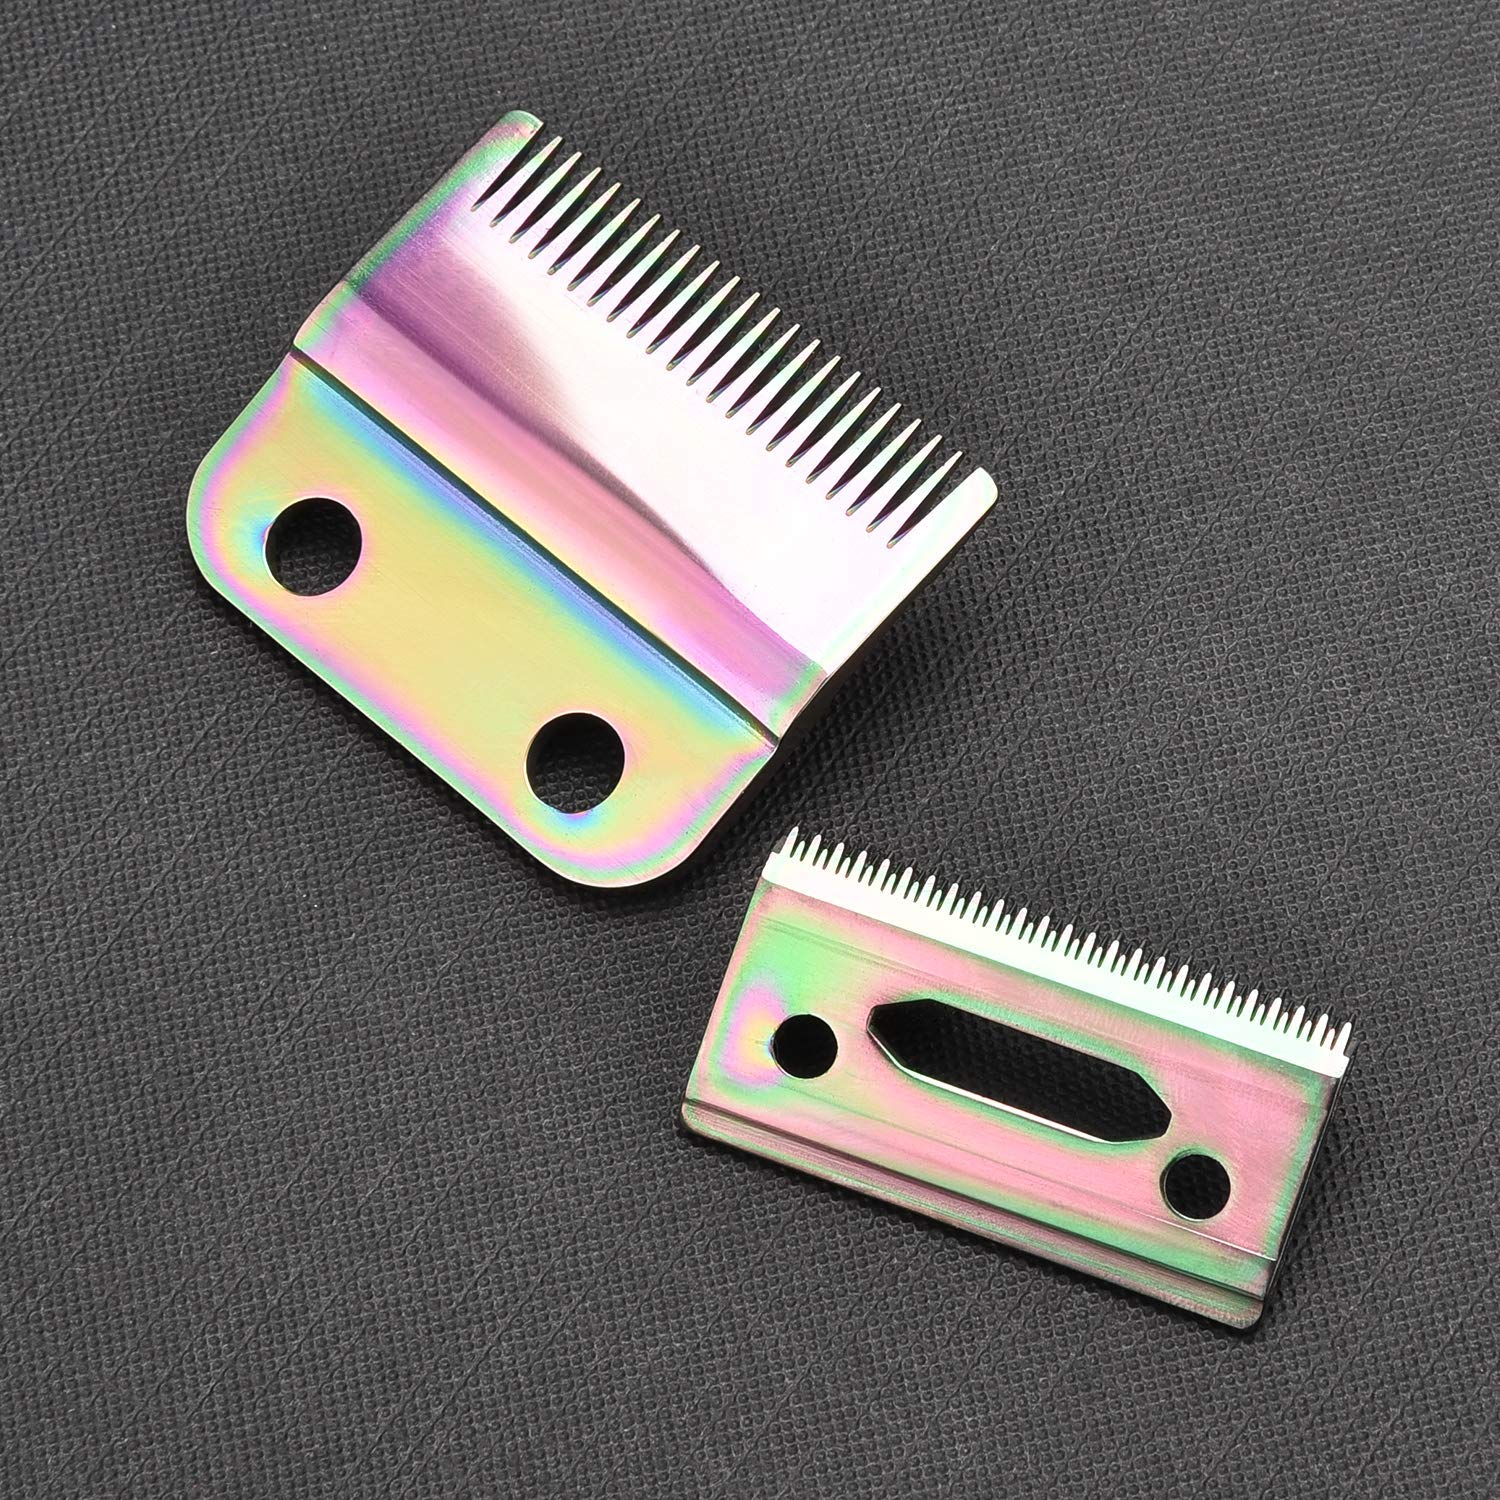 Professional 2-Hole Stagger-Tooth Clipper Replacement Blade #2161,Magic Clip Blade,Fits for Professional 5 Star Senior Cordless Wahl Clipper,Including Screws